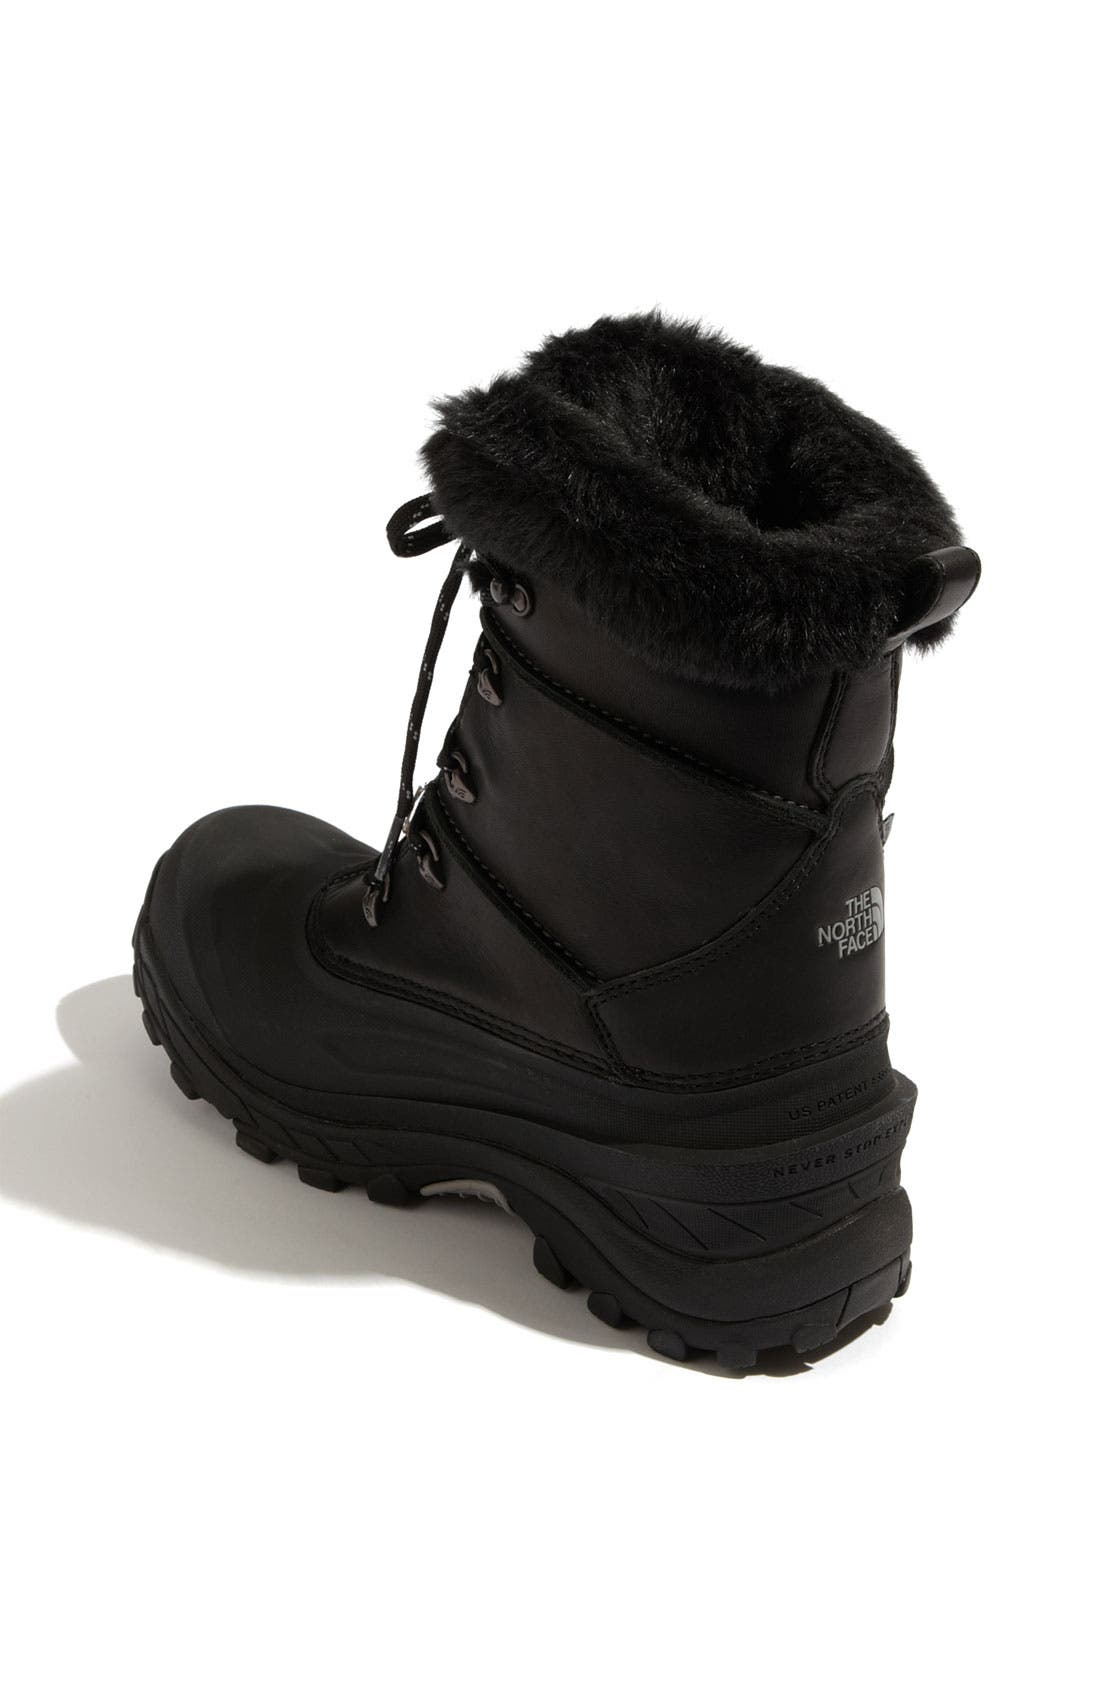 THE NORTH FACE,                             'McMurdo II' Boot,                             Alternate thumbnail 3, color,                             001